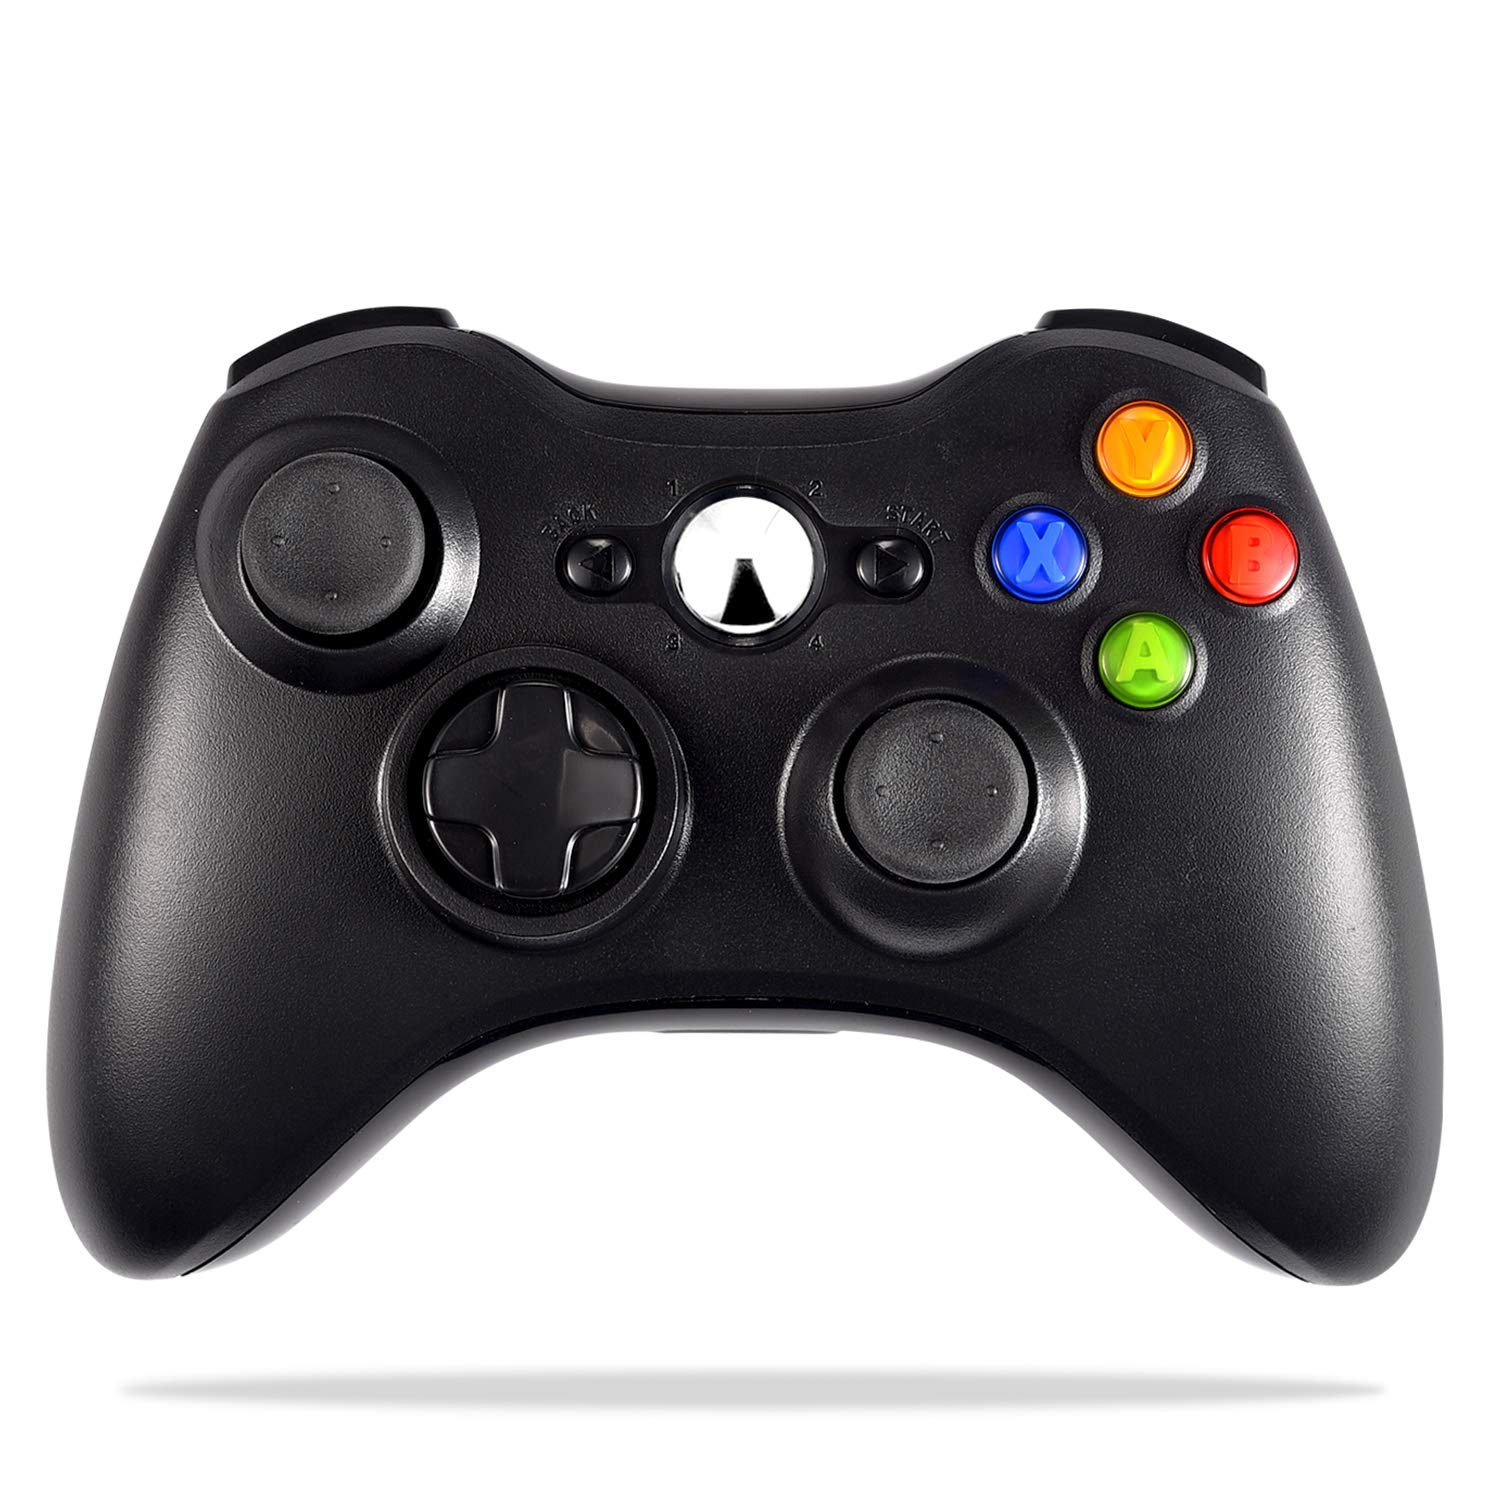 Wireless Controller For Xbox 360 Astarry 2 4ghz Game Controller Gamepad Joystick For Xbox Slim 360 Pc Windows 7 8 10 Black